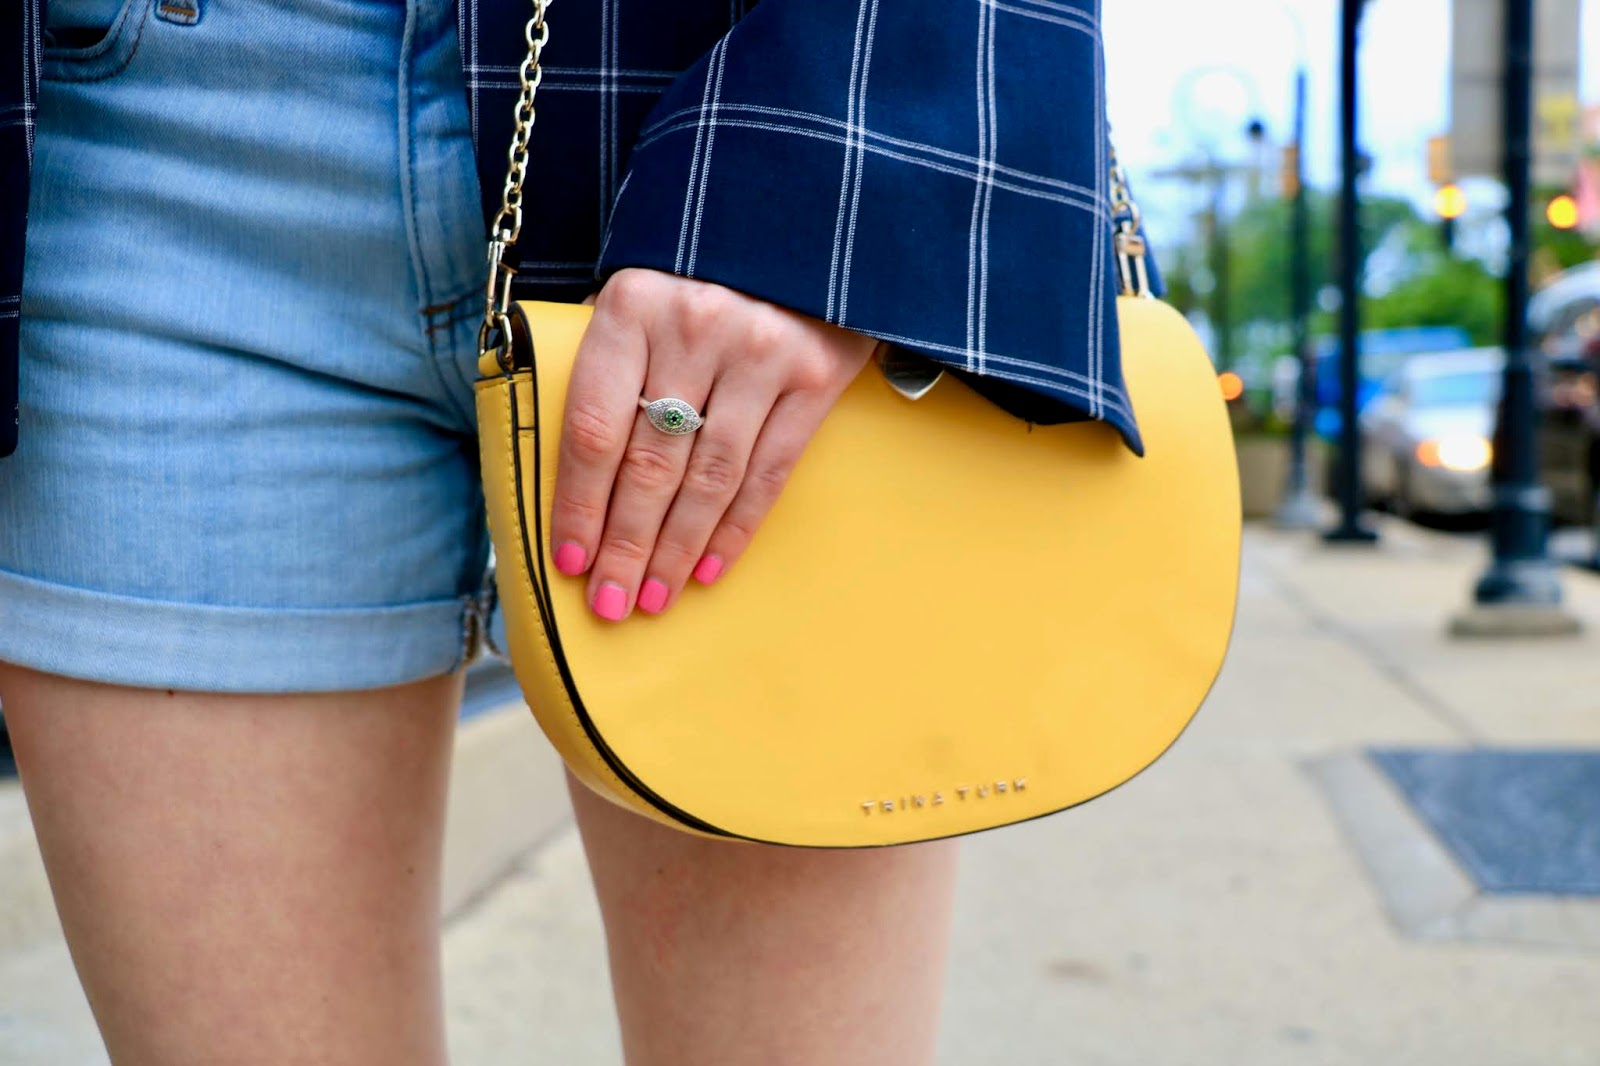 Nyc fashion blogger Kathleen Harper carrying a yellow Trina Turk purse